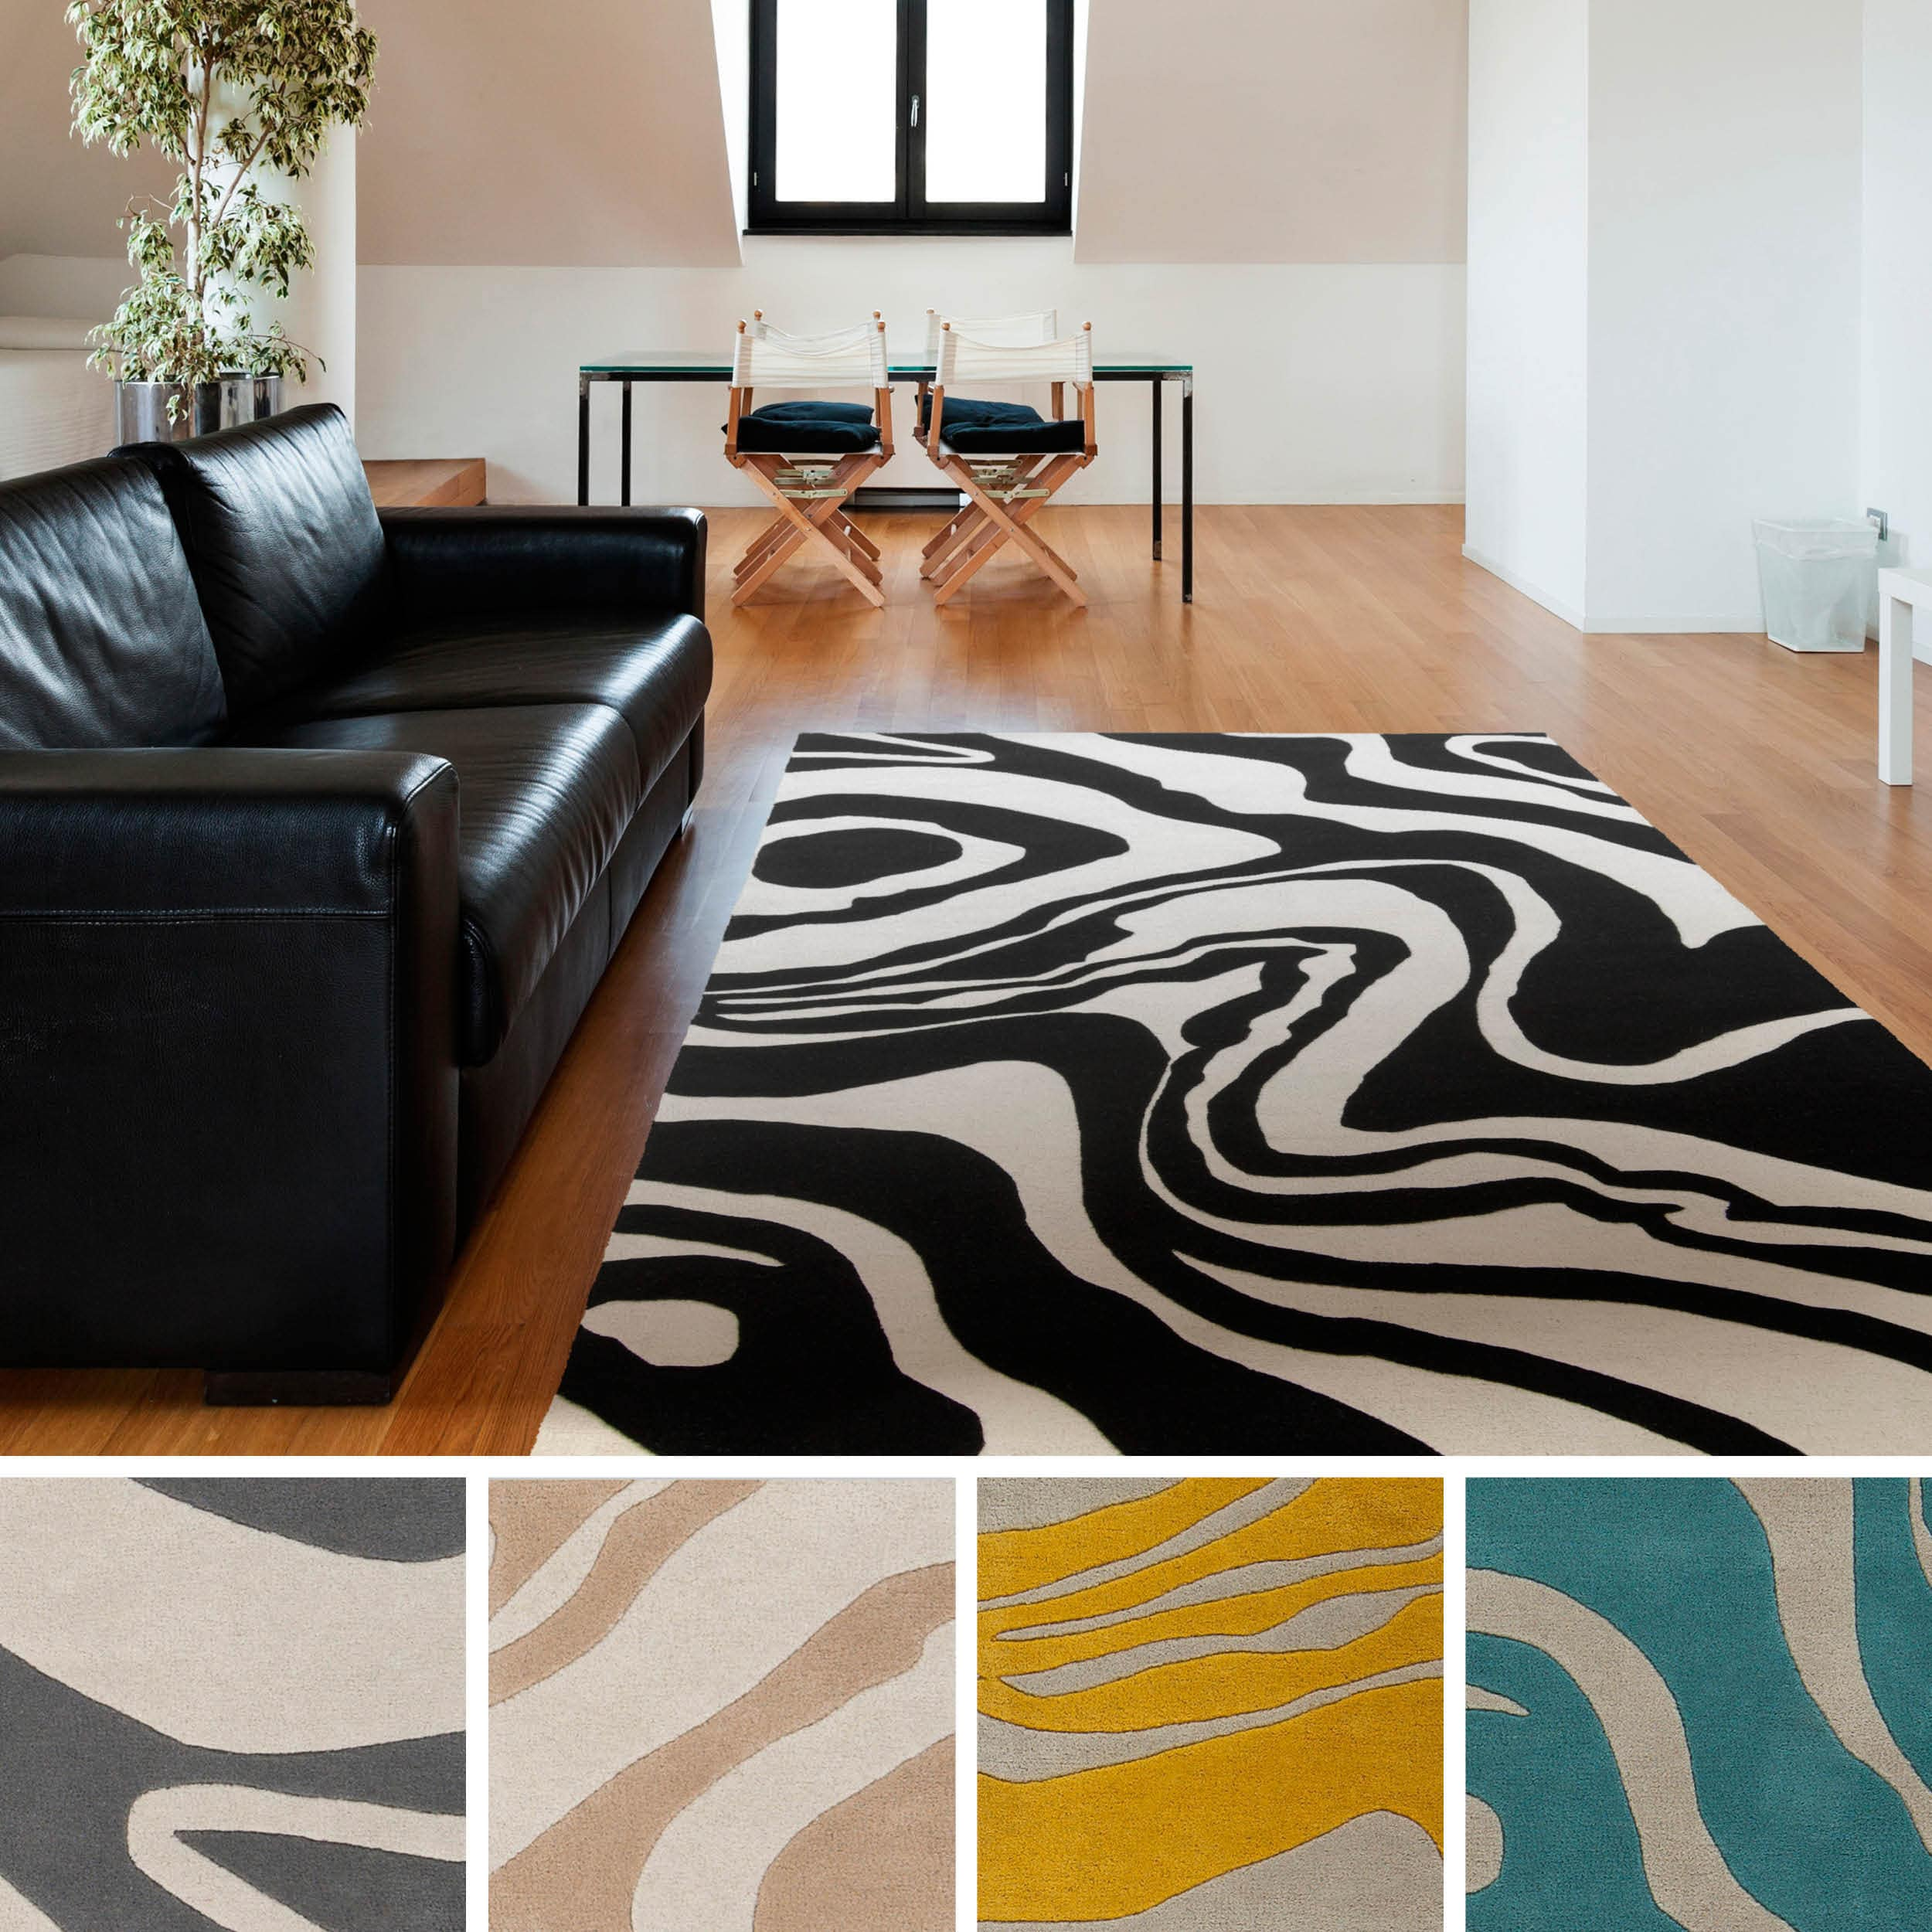 Overstock.com Hand-tufted Lydia Abstract New Zealand Wool Area Rug (2' x 3') at Sears.com